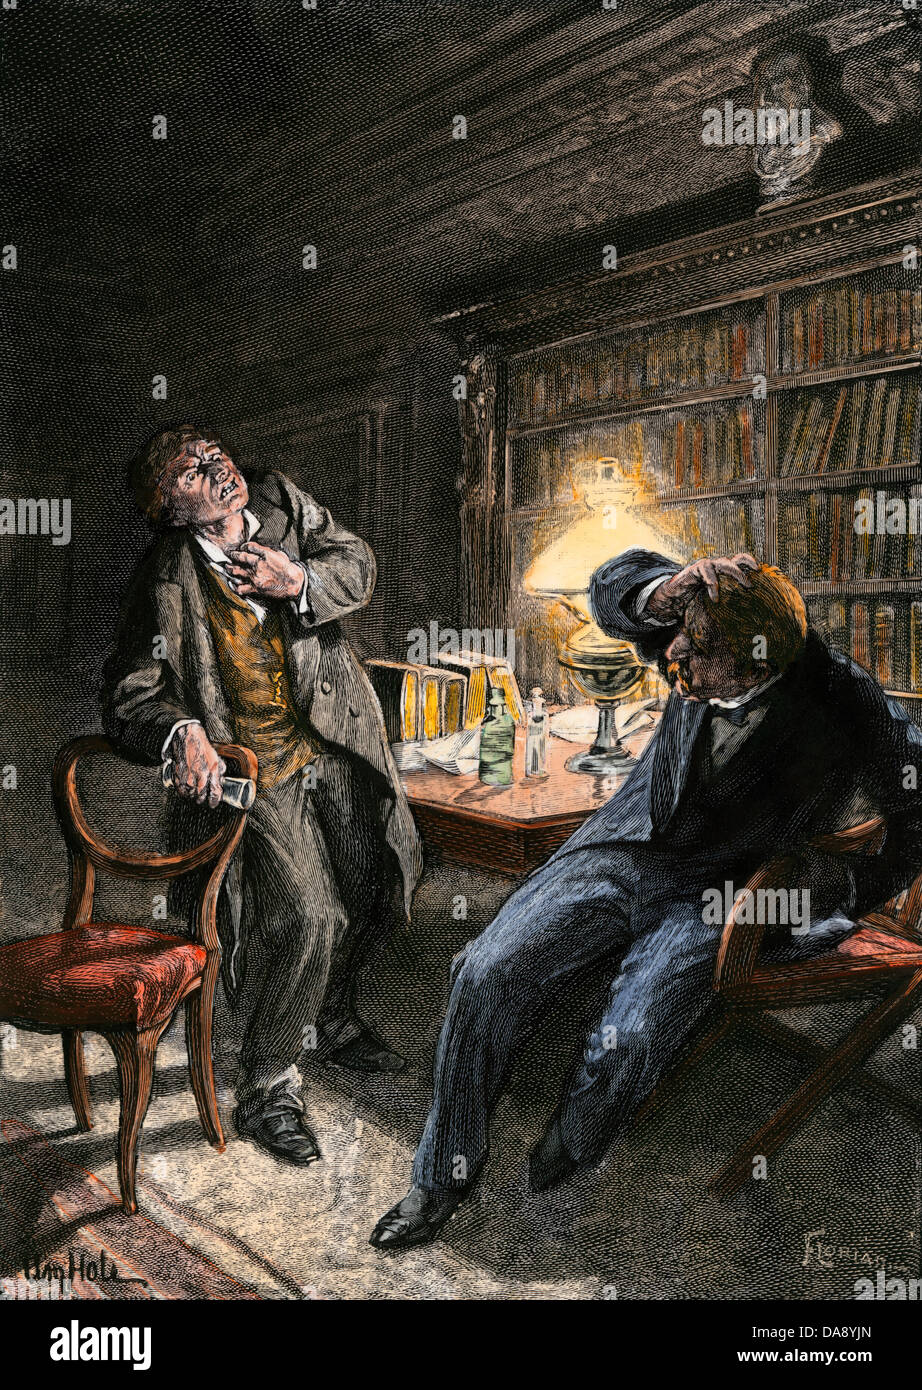 """a literary analysis of the transformation in dr jekyll and mr hyde Stevenson's the strange case of dr jekyll and mr hyde is an ambiguous   internally with good and evil4 the writer made this inner conflict the theme of   macduffie, """"irreversible transformations: robert louis stevenson's dr jekyll and  mr."""